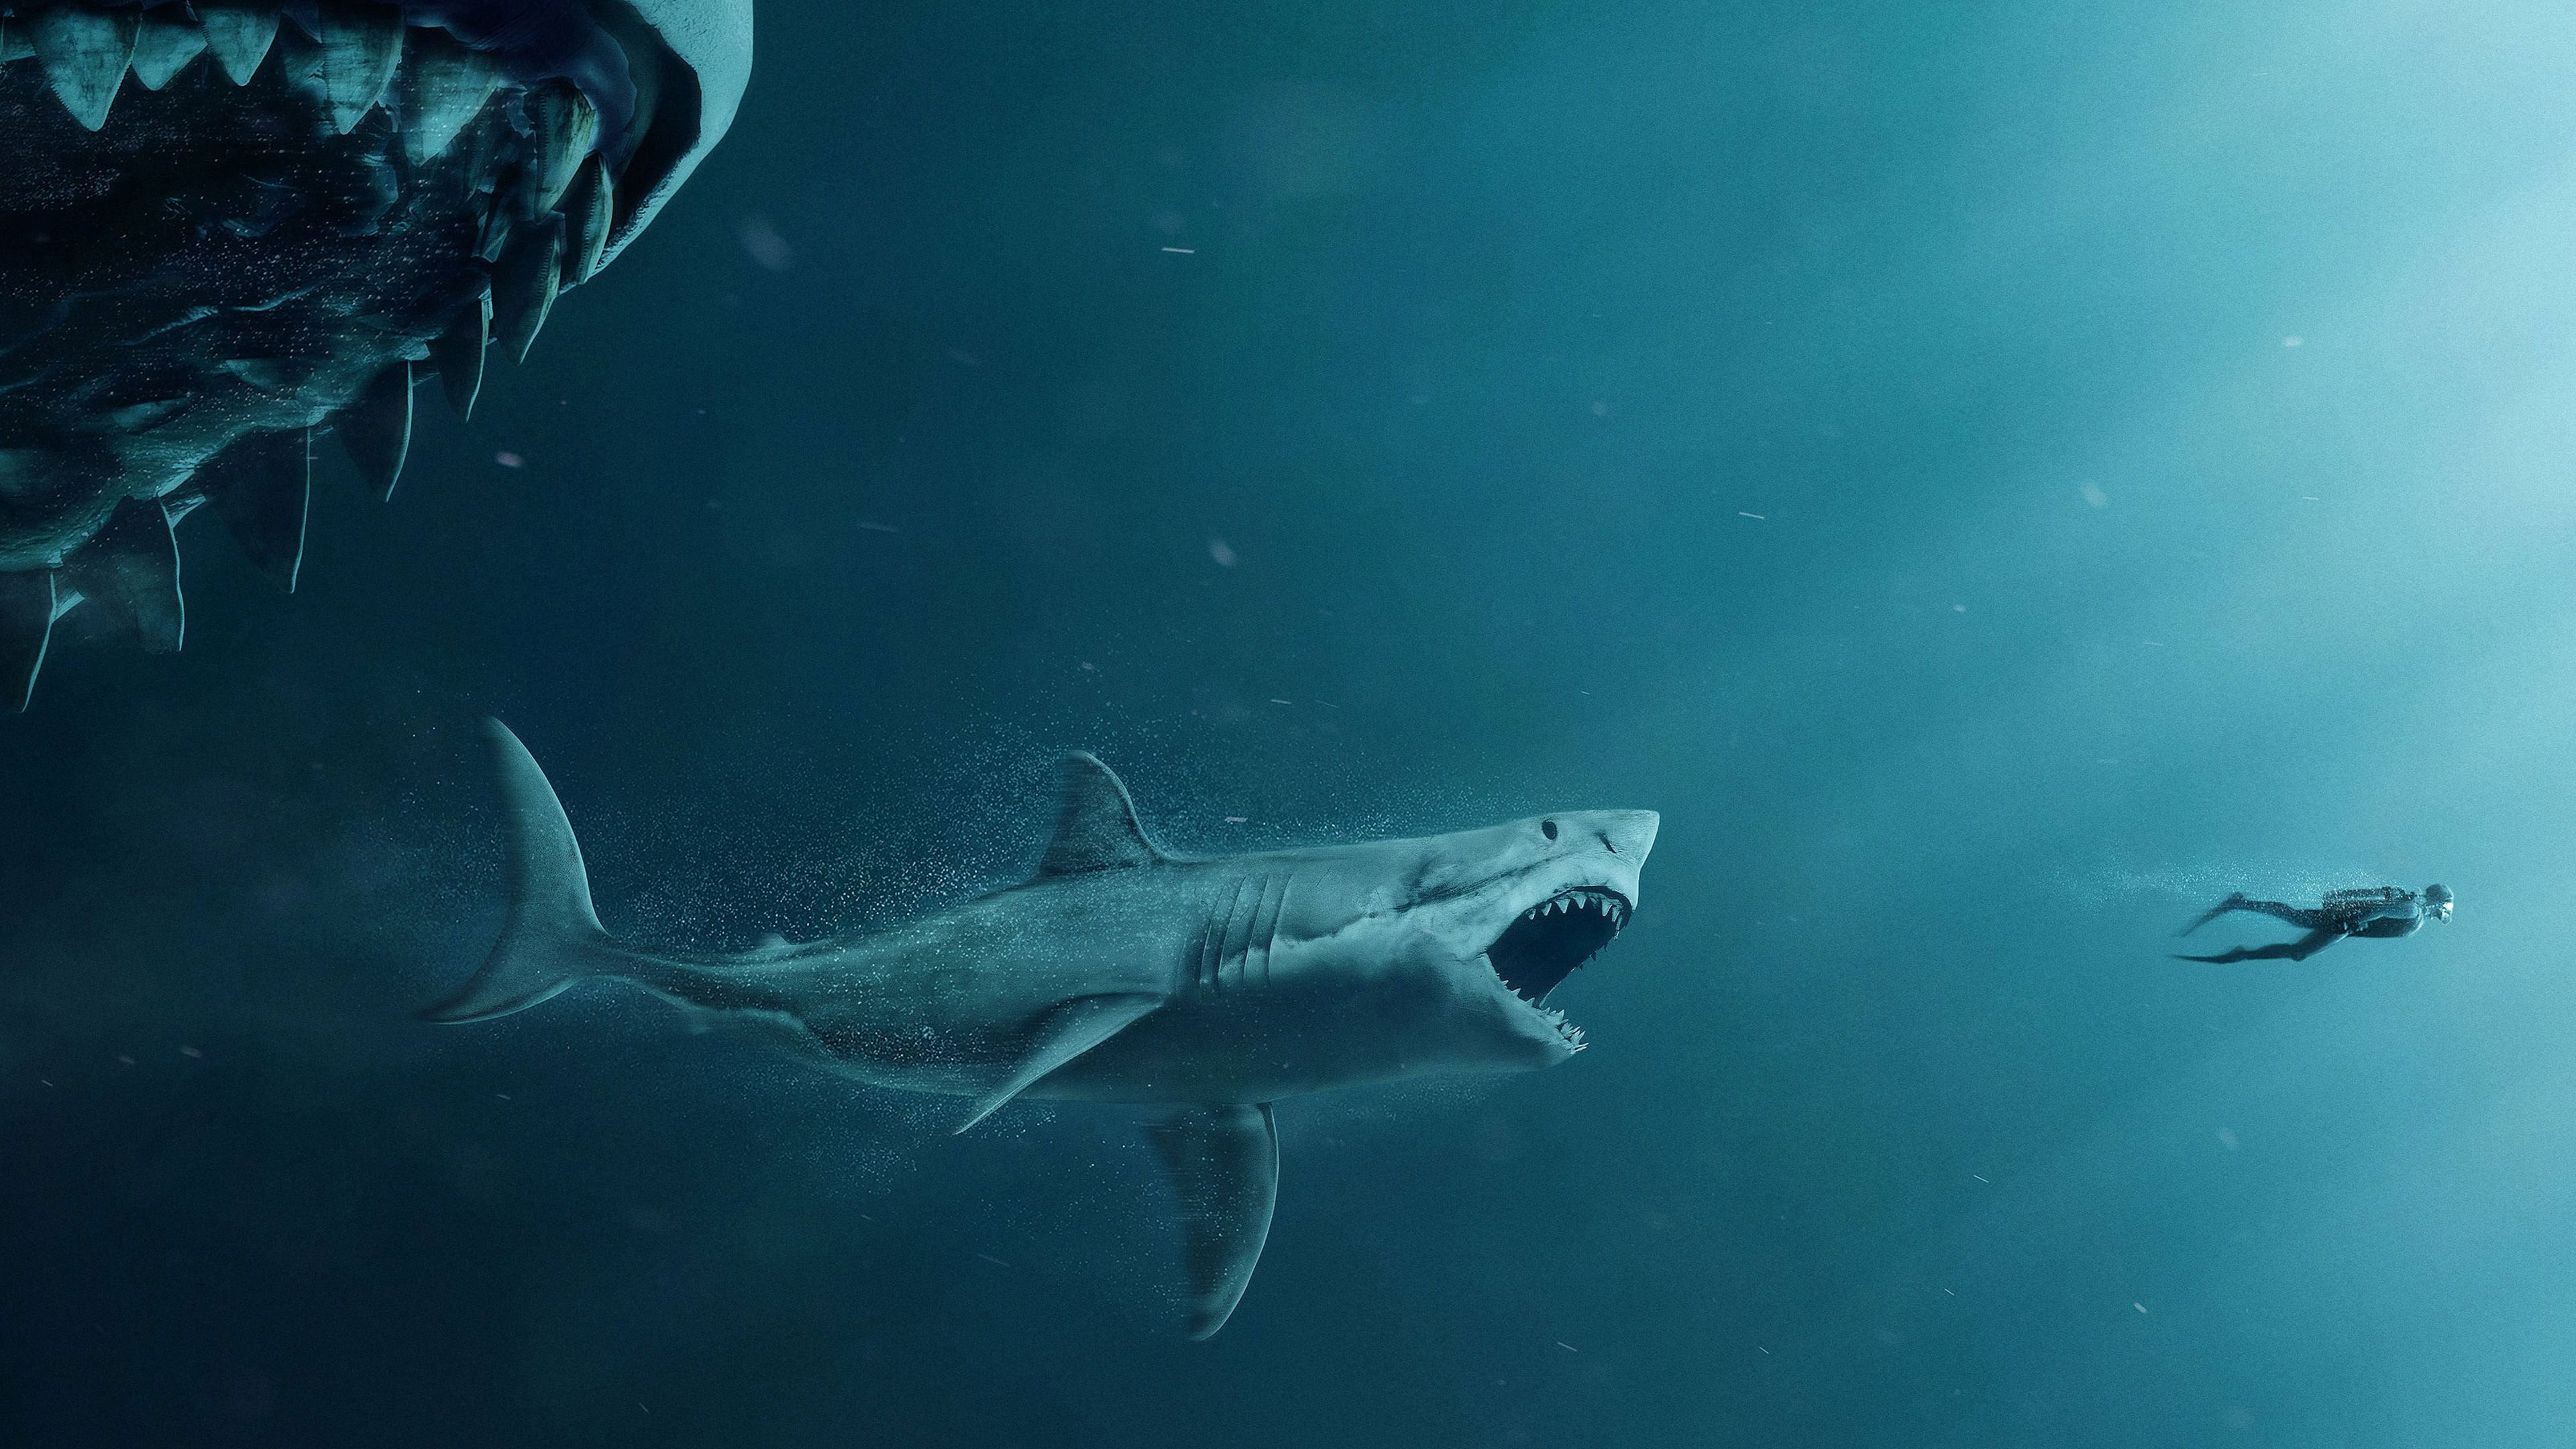 4k the meg movie wallpaper 64769